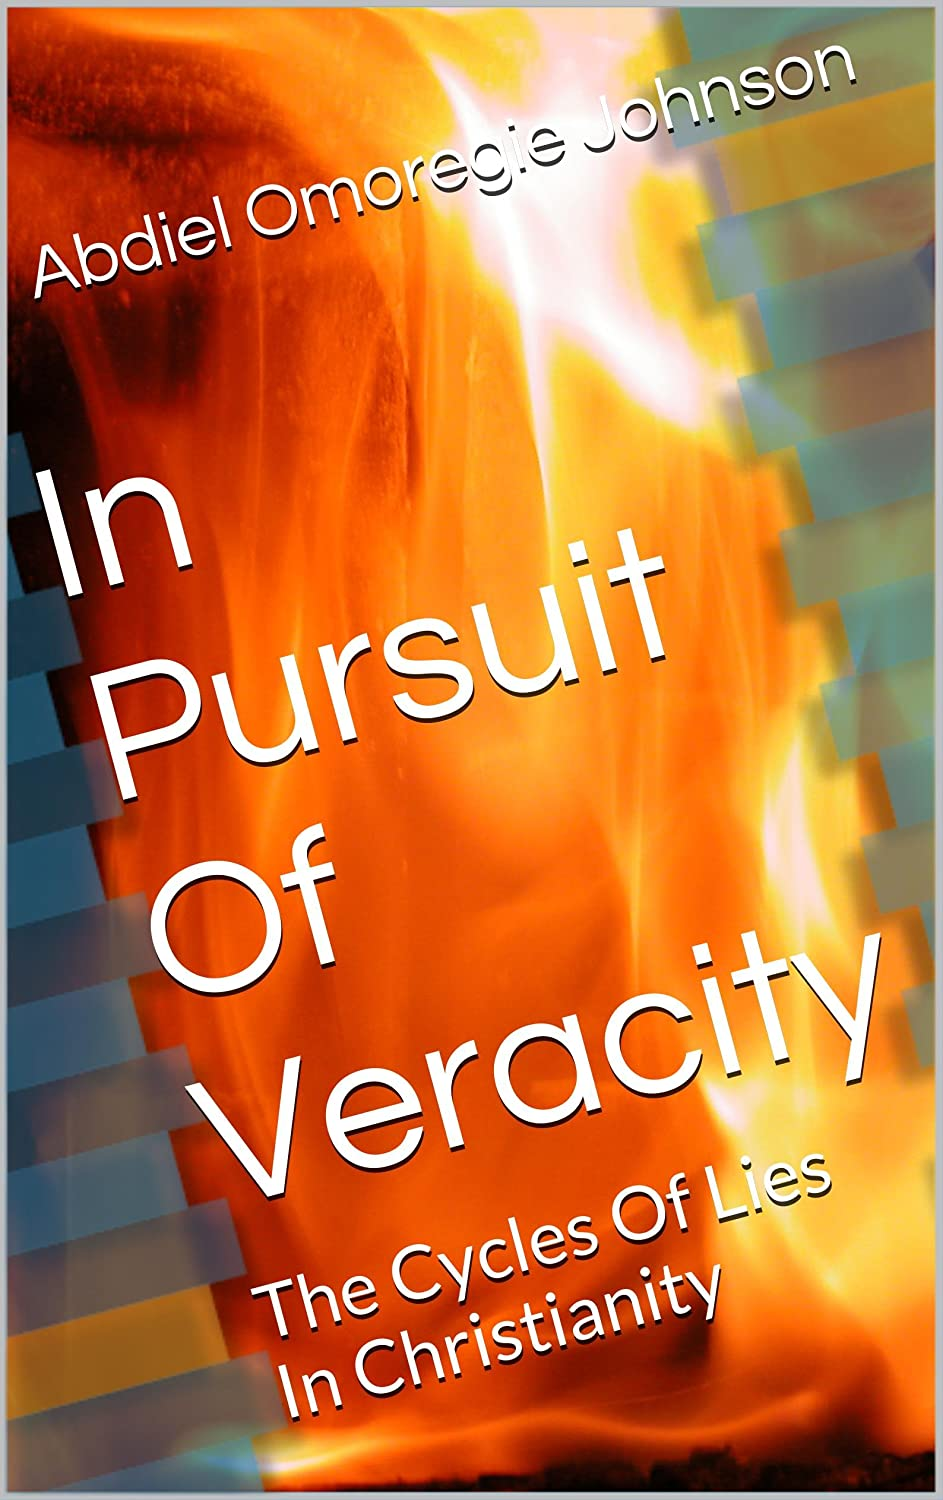 In Pursuit Of Veracity: The Cycles Of Lies In Christianity by Abdiel Omoregie Johnson